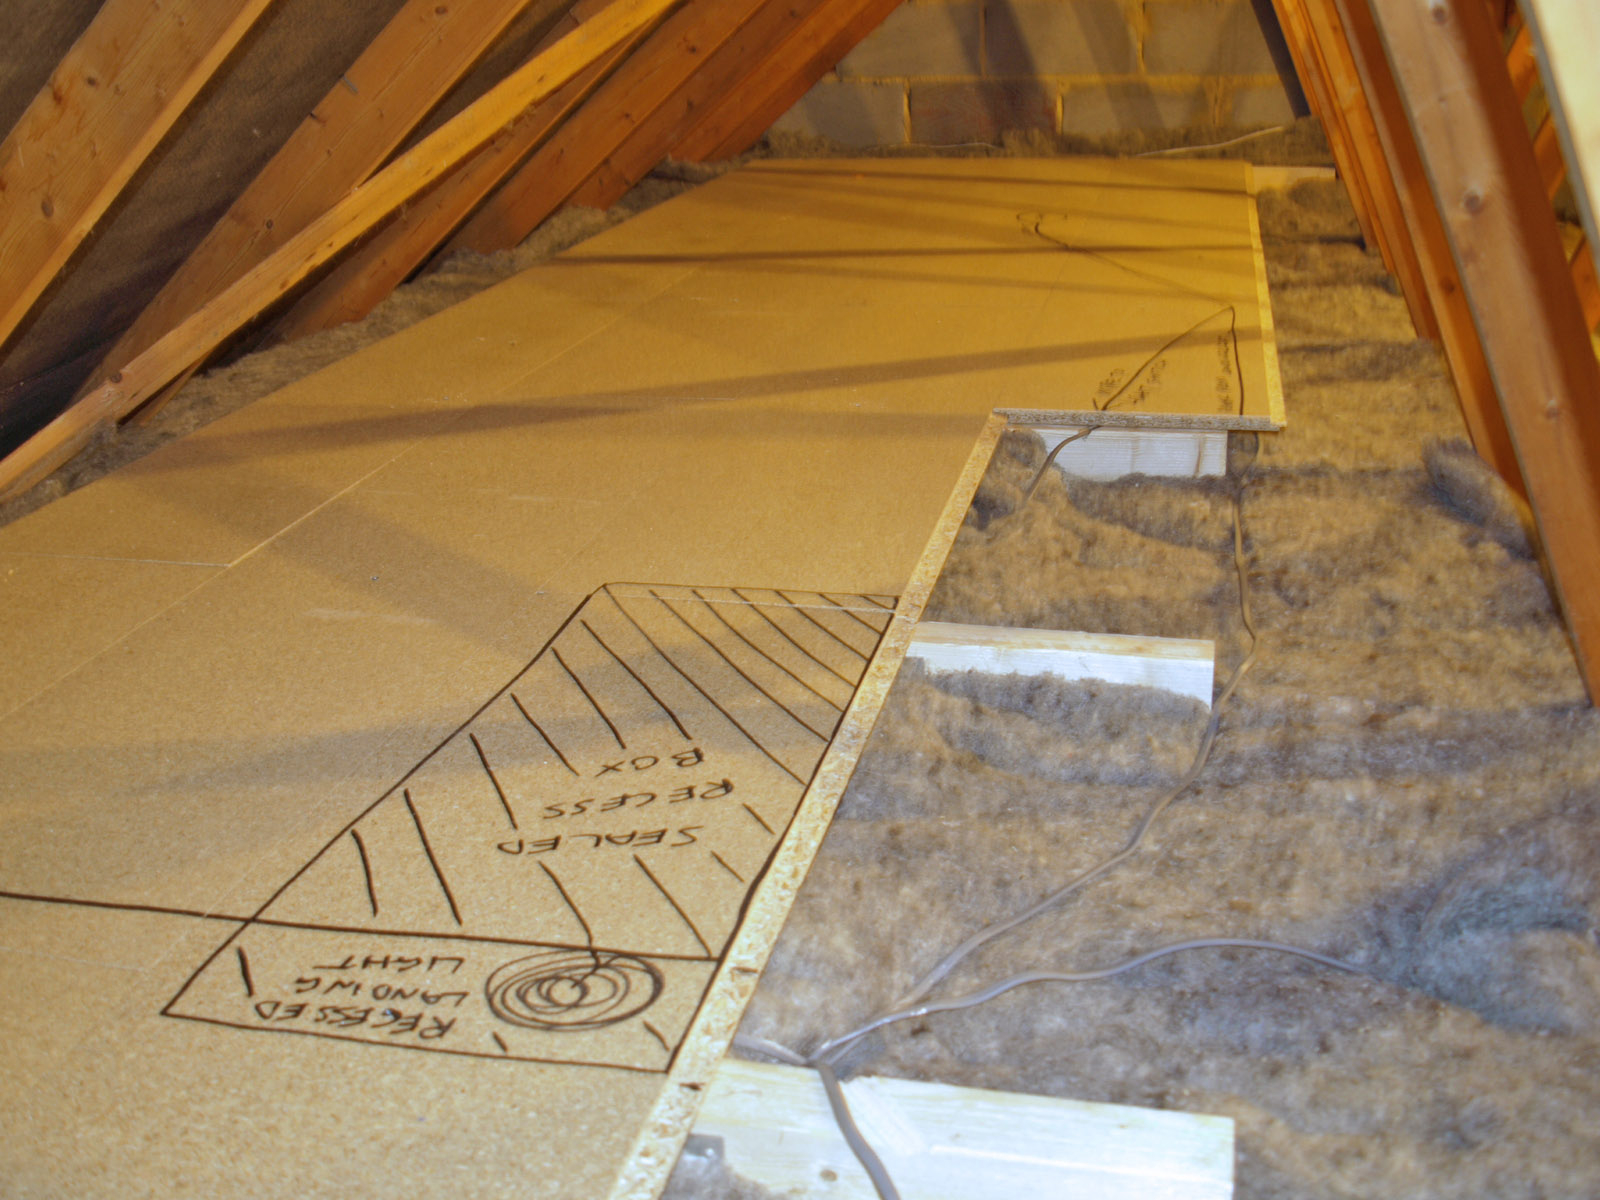 Insulating attic floor boards attic ideas is boarding over loft insulation a diy job pertaining to proportions 1600 x 1200 solutioingenieria Choice Image